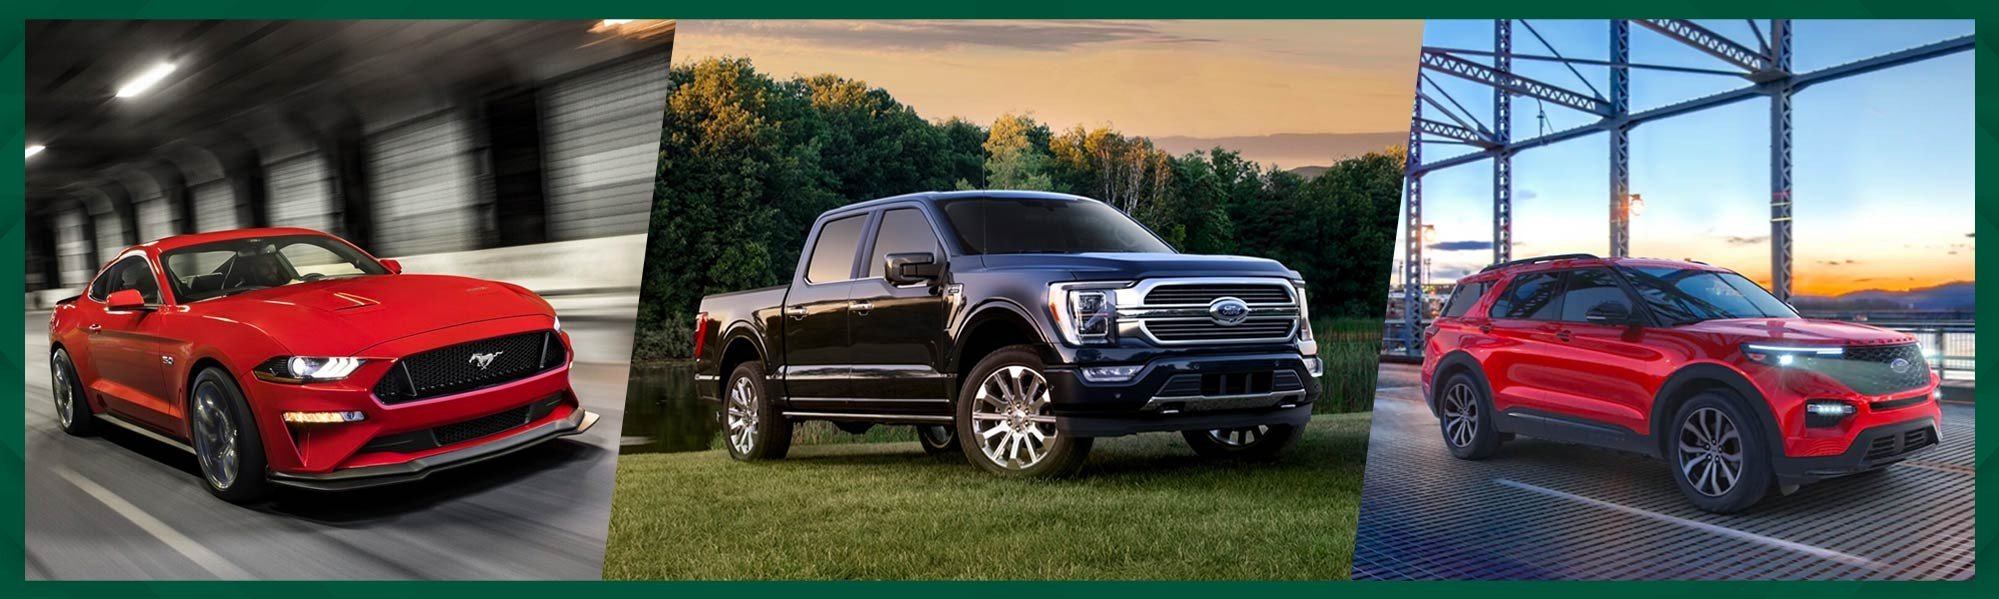 2021 Ford models for sale Vermont